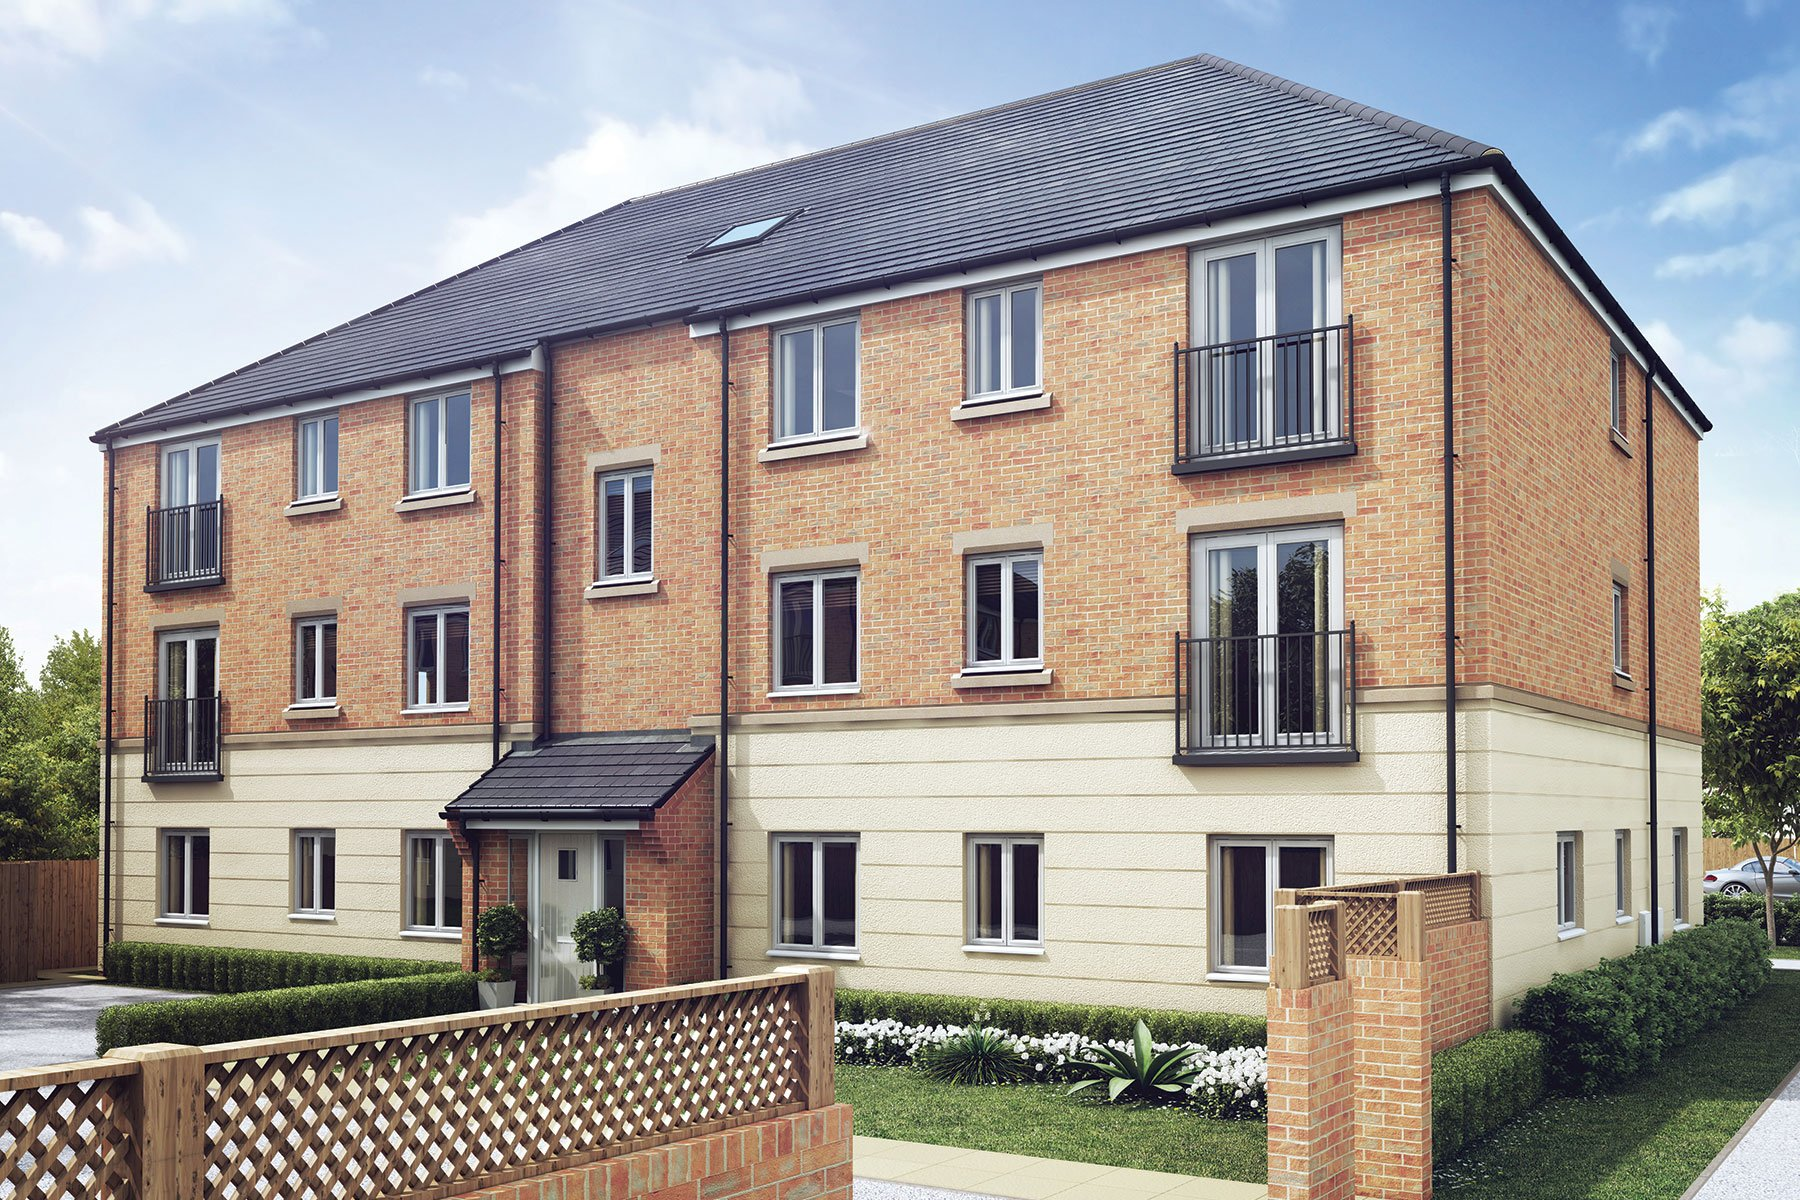 The Apartments Taylor Wimpey